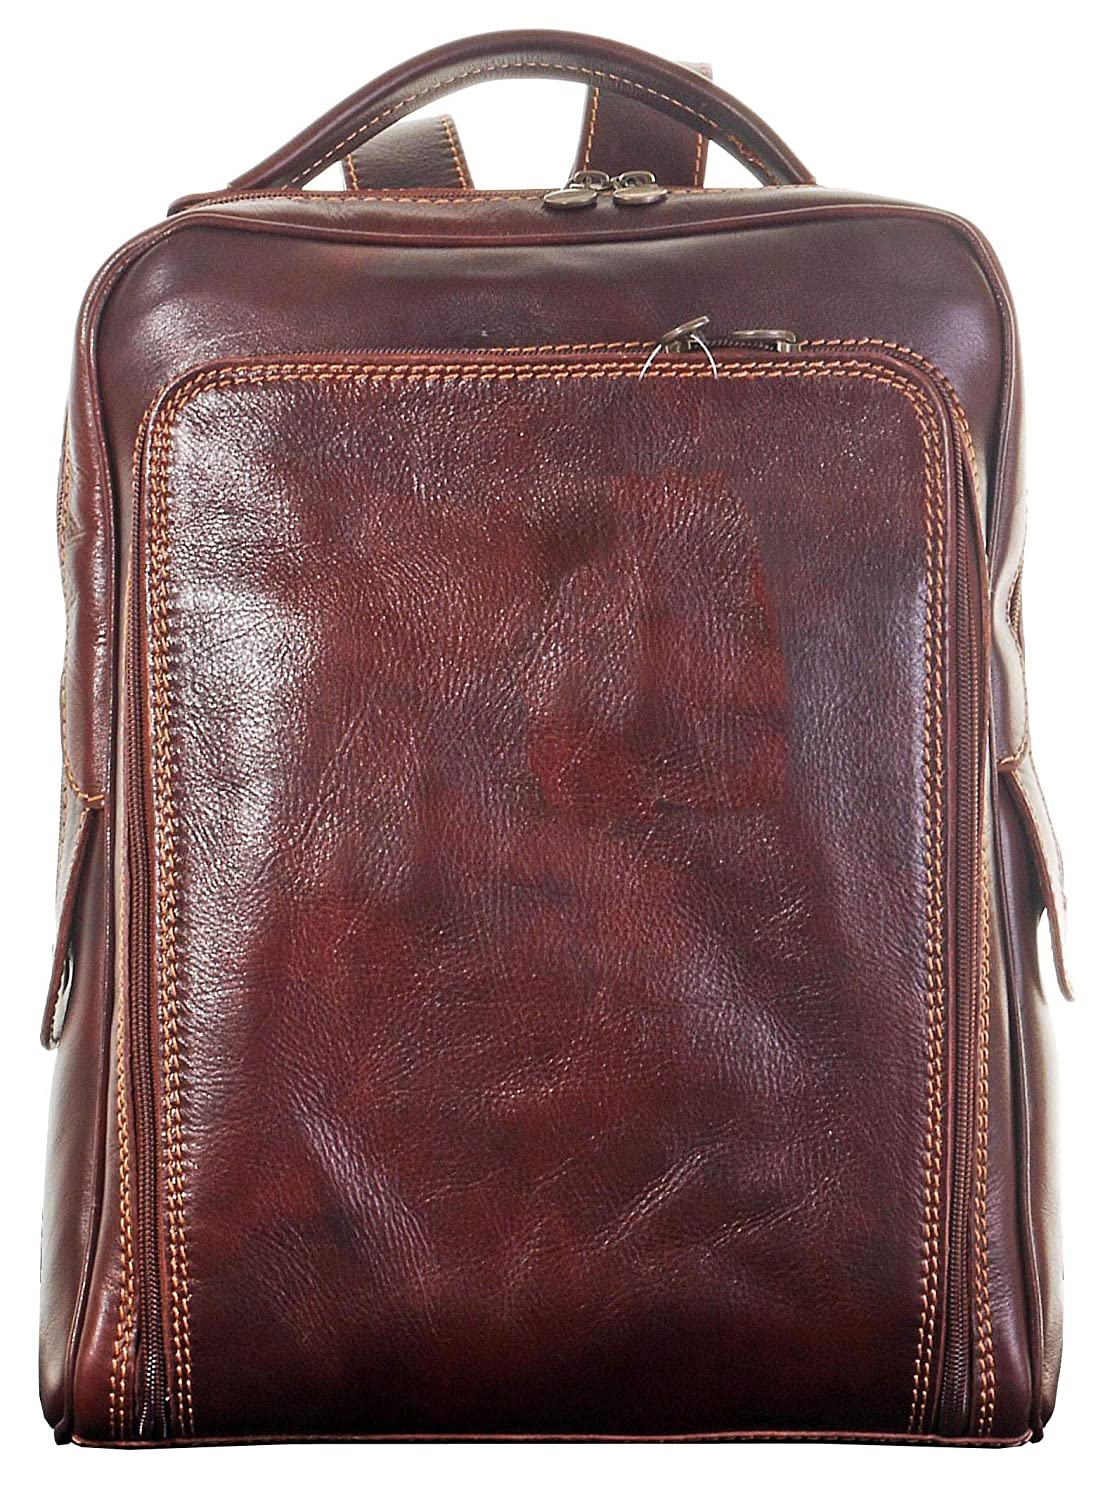 Primo Sacchi® Luxury Italian Leather Hand Made Gentlemans Classic Style Back Pack Rucksack Briefcase Shoulder Bag. Includes Branded Protective Storage Bag